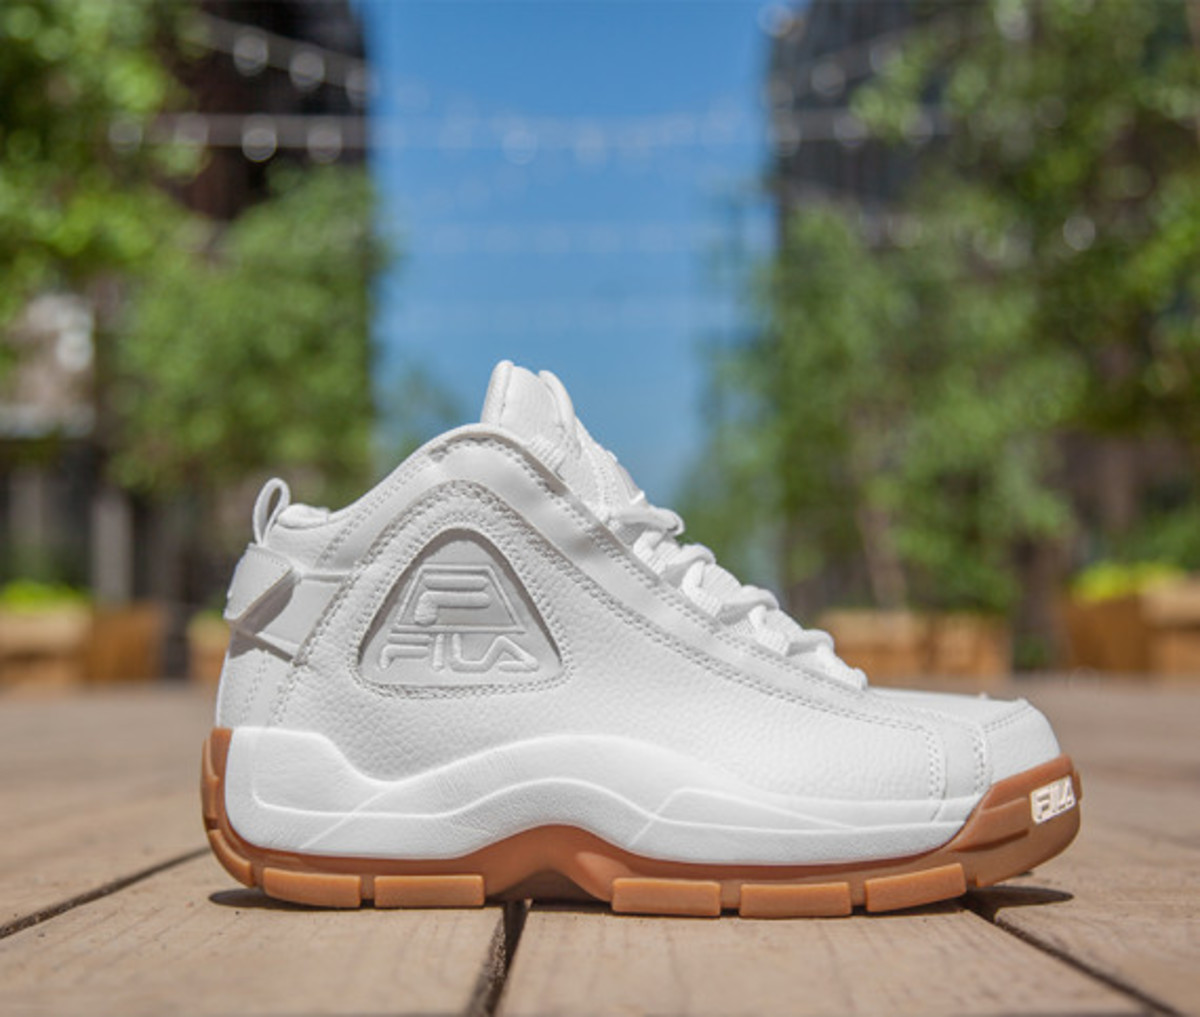 fila-96-independence-day-06